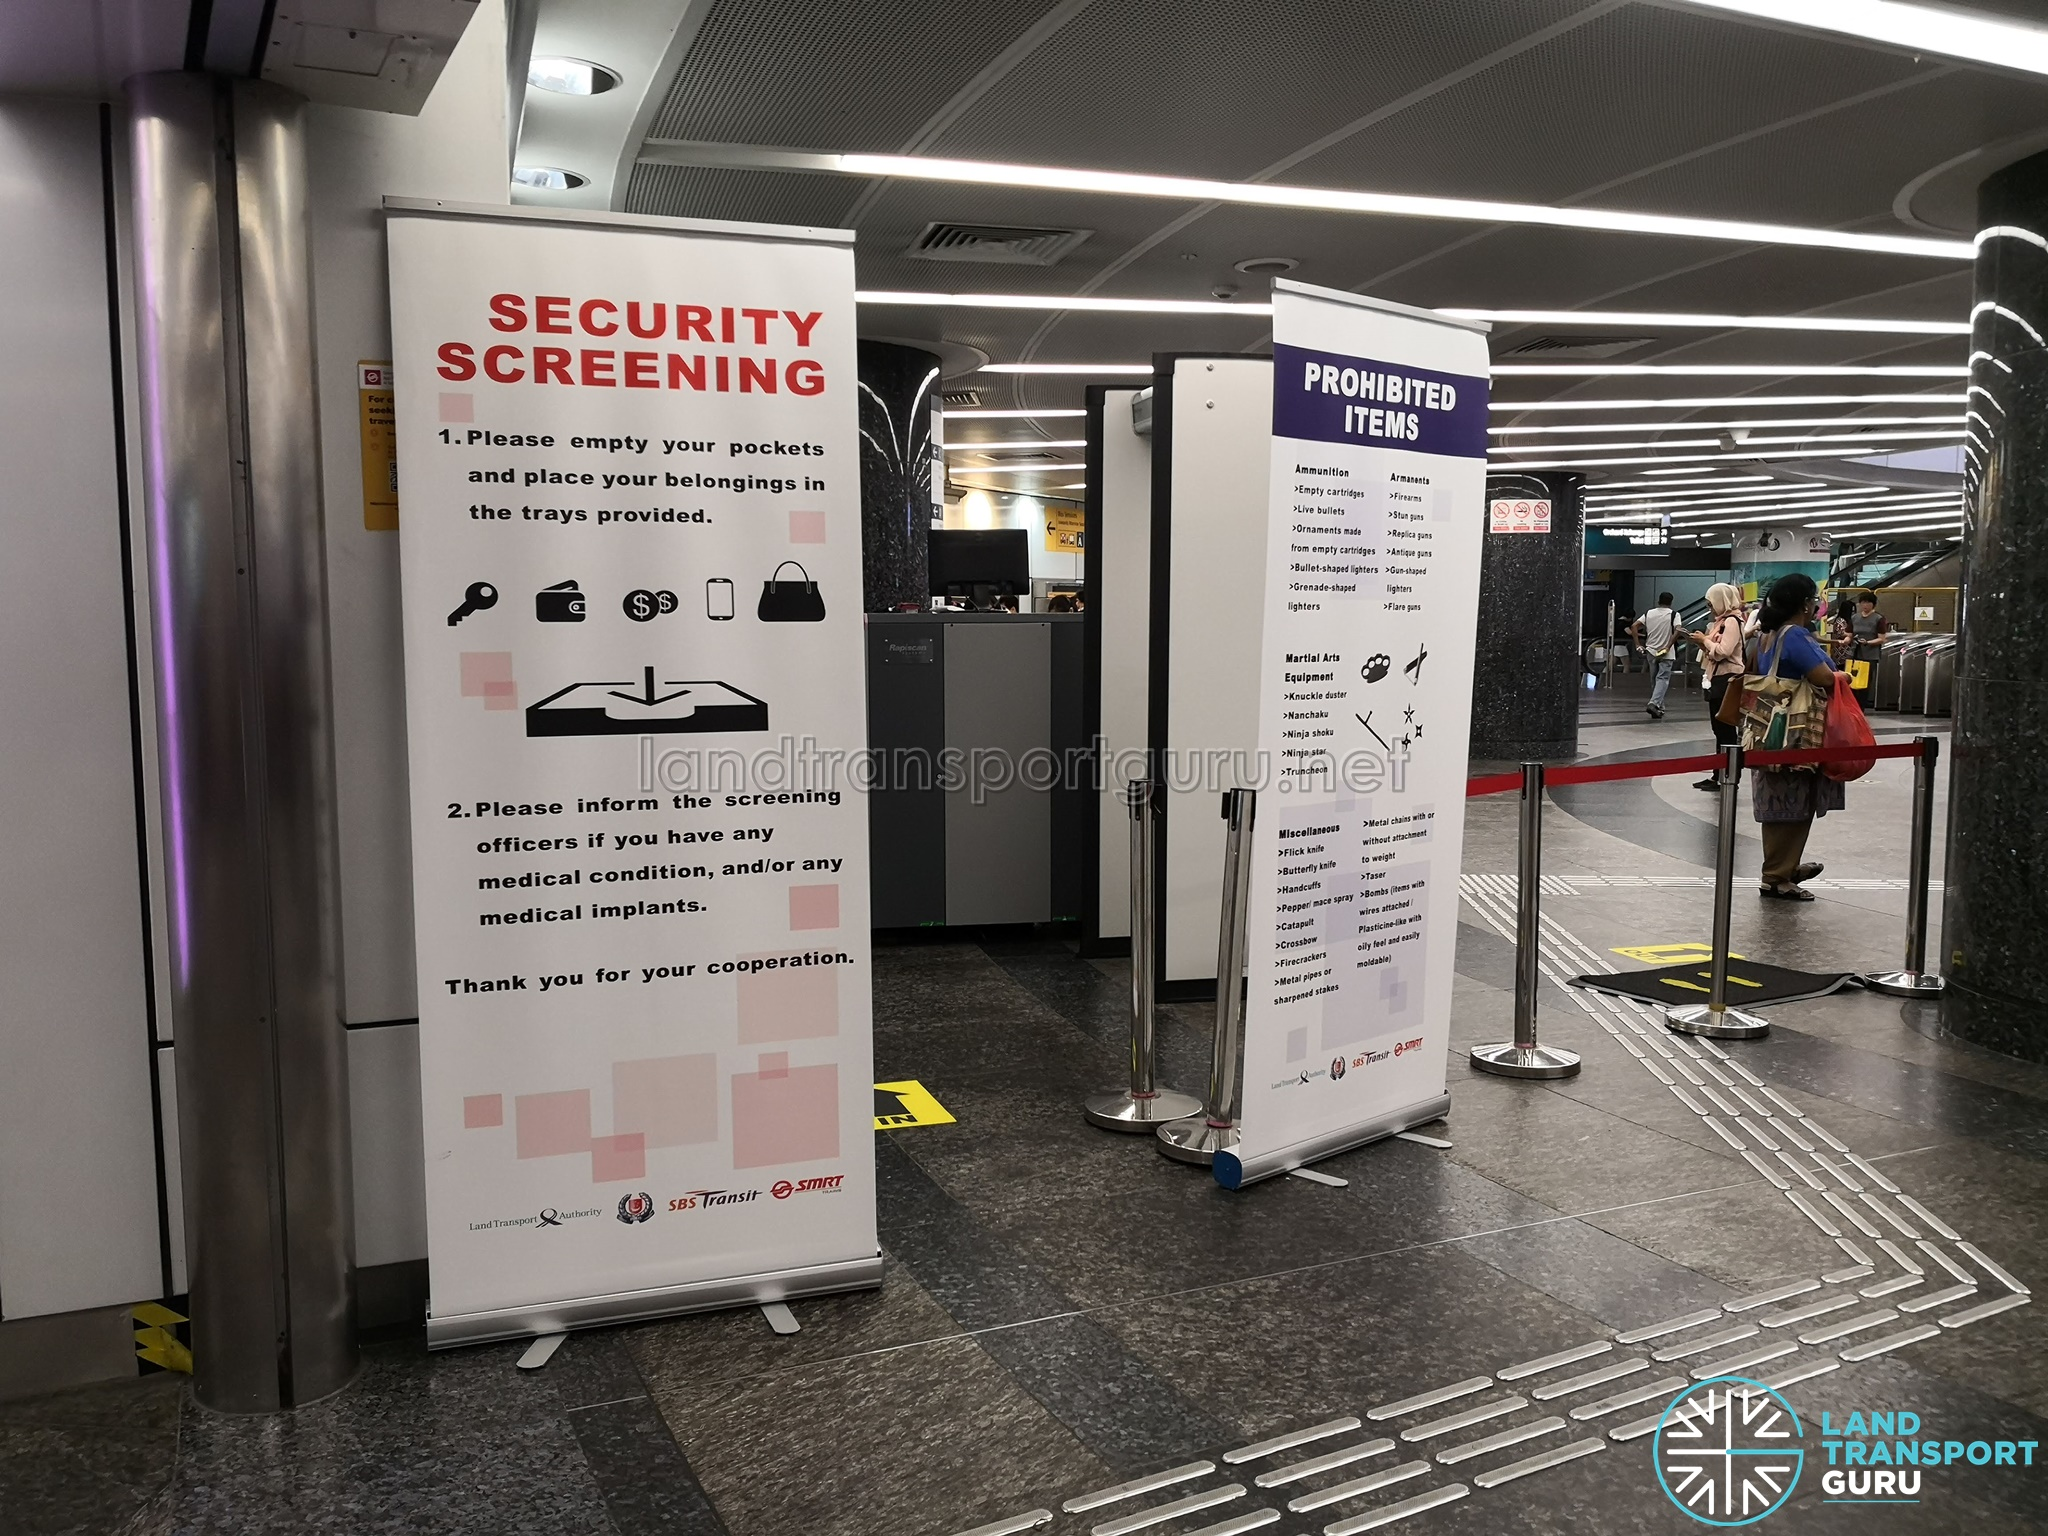 Security Screening Notice at MRT Station